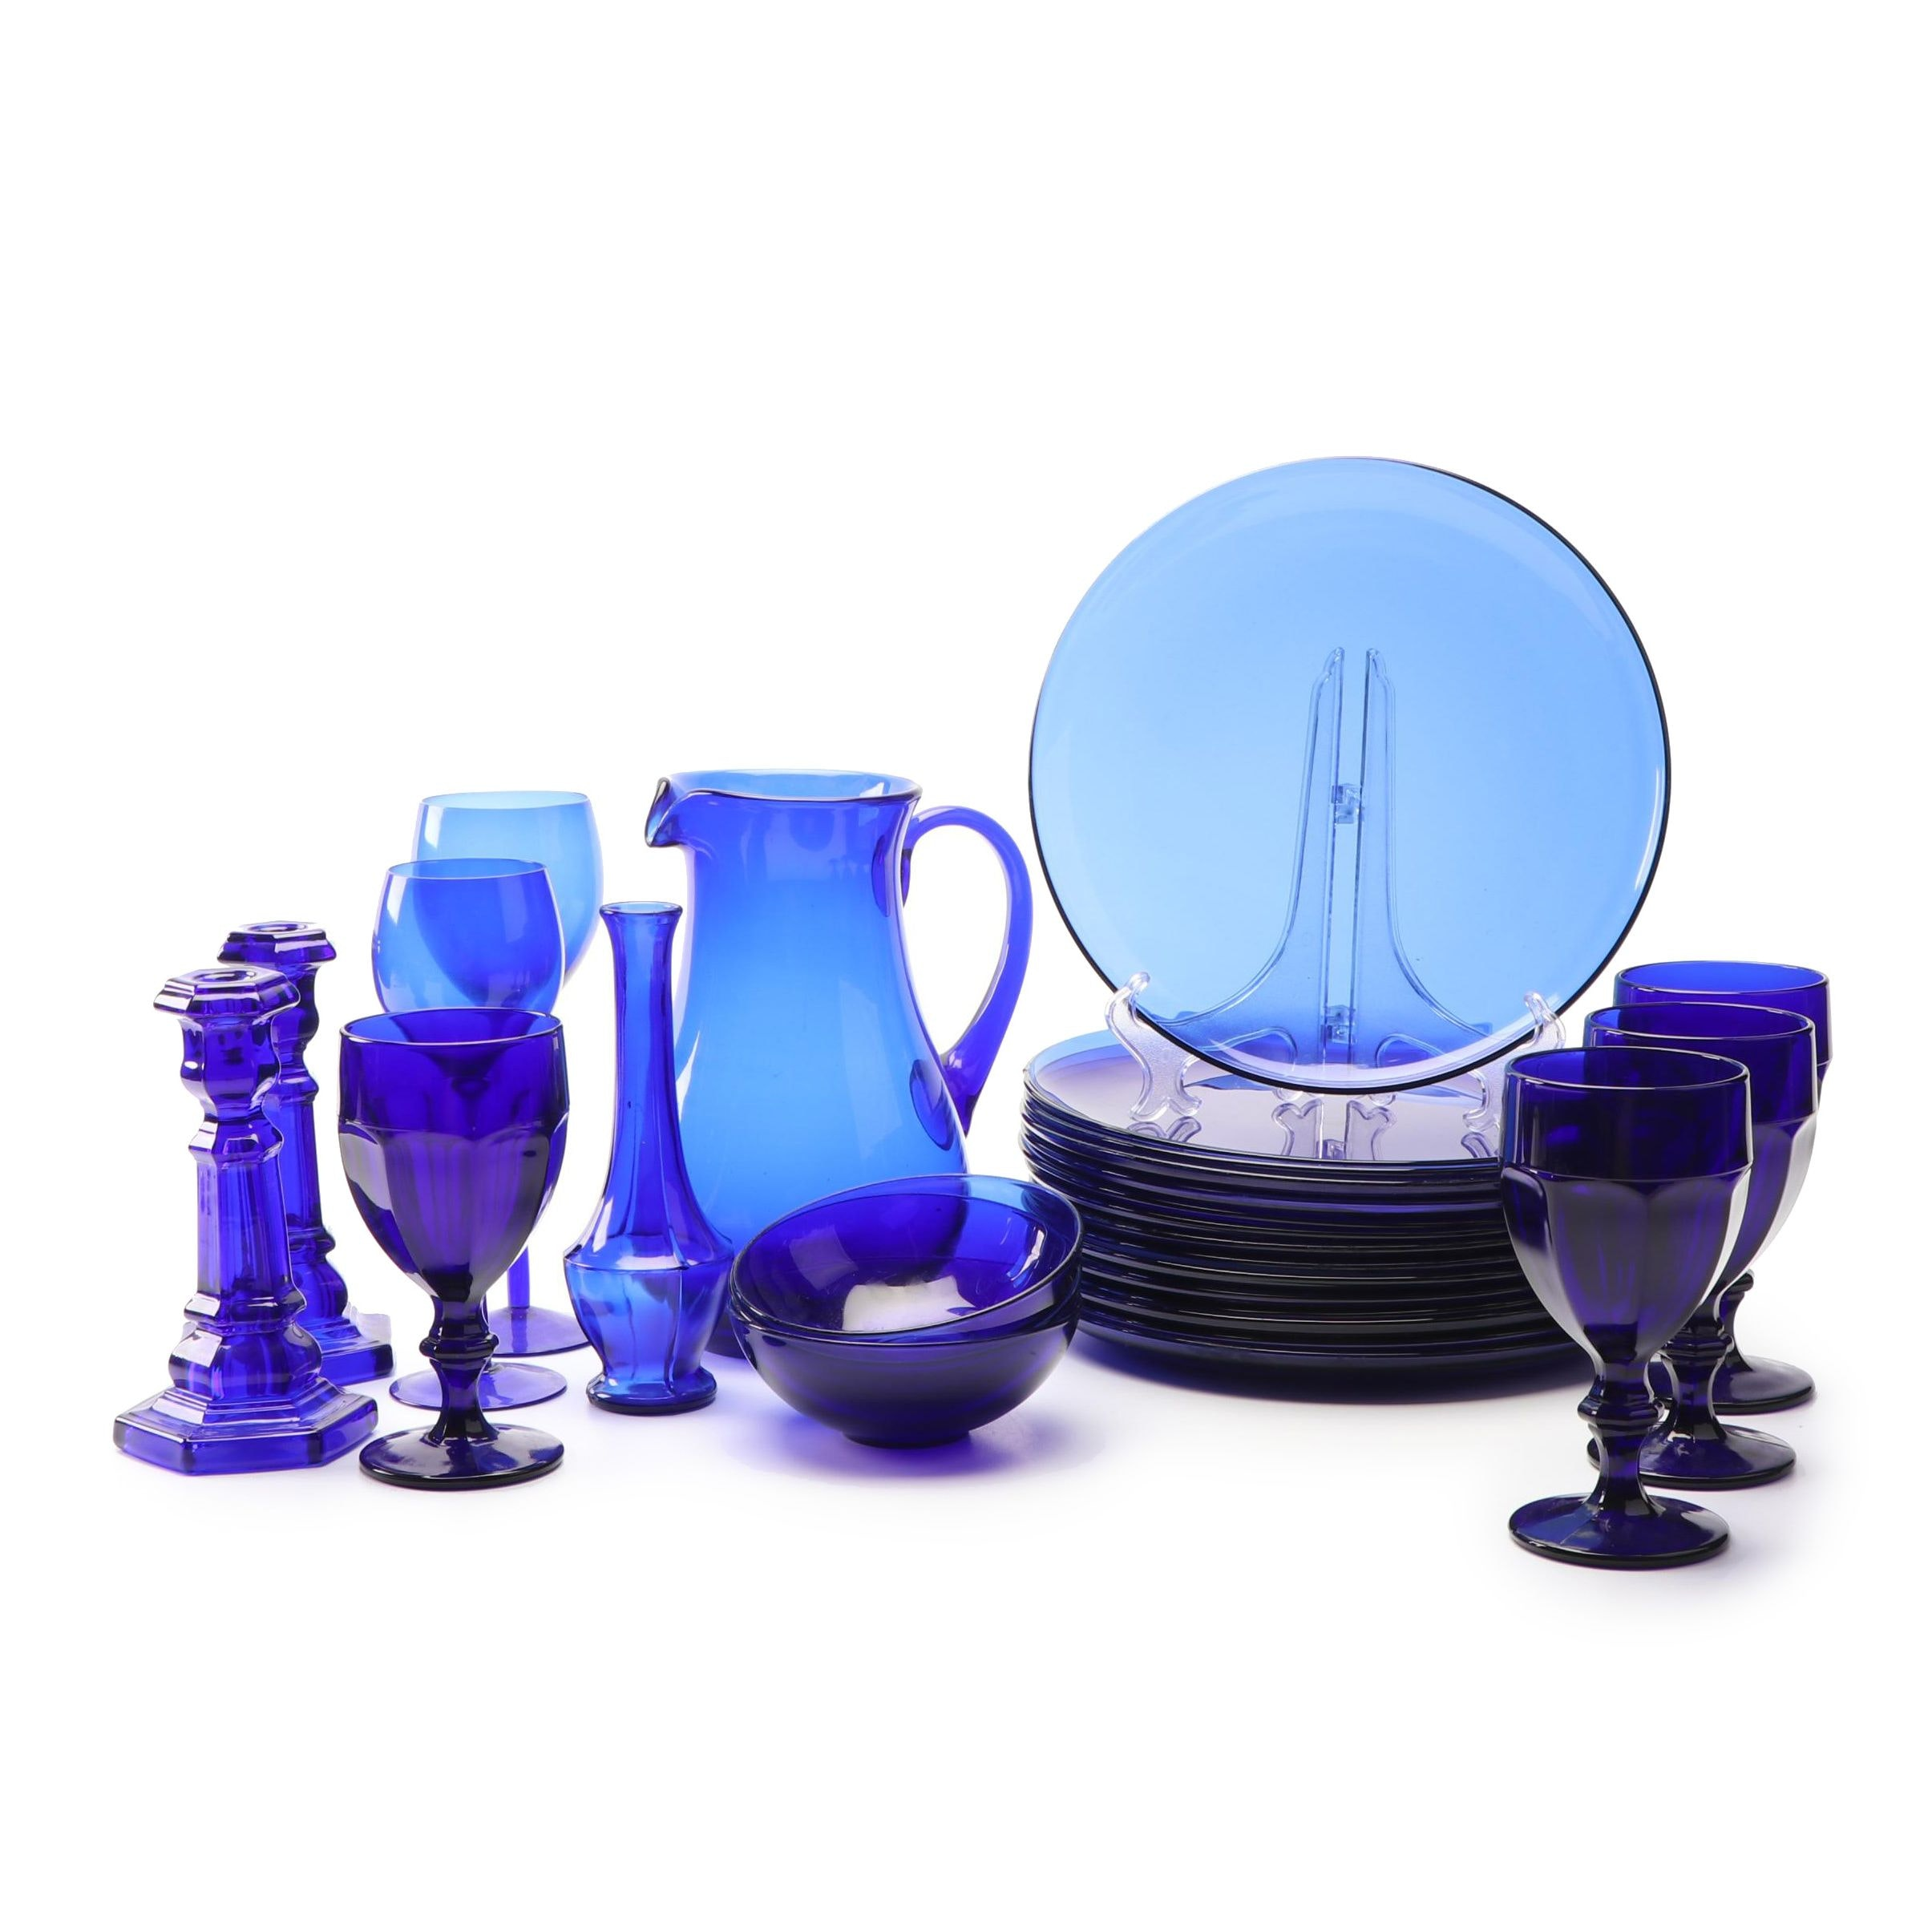 Cobalt Blue Glass Dinnerware with Goblets and Candlesticks featuring Libbey